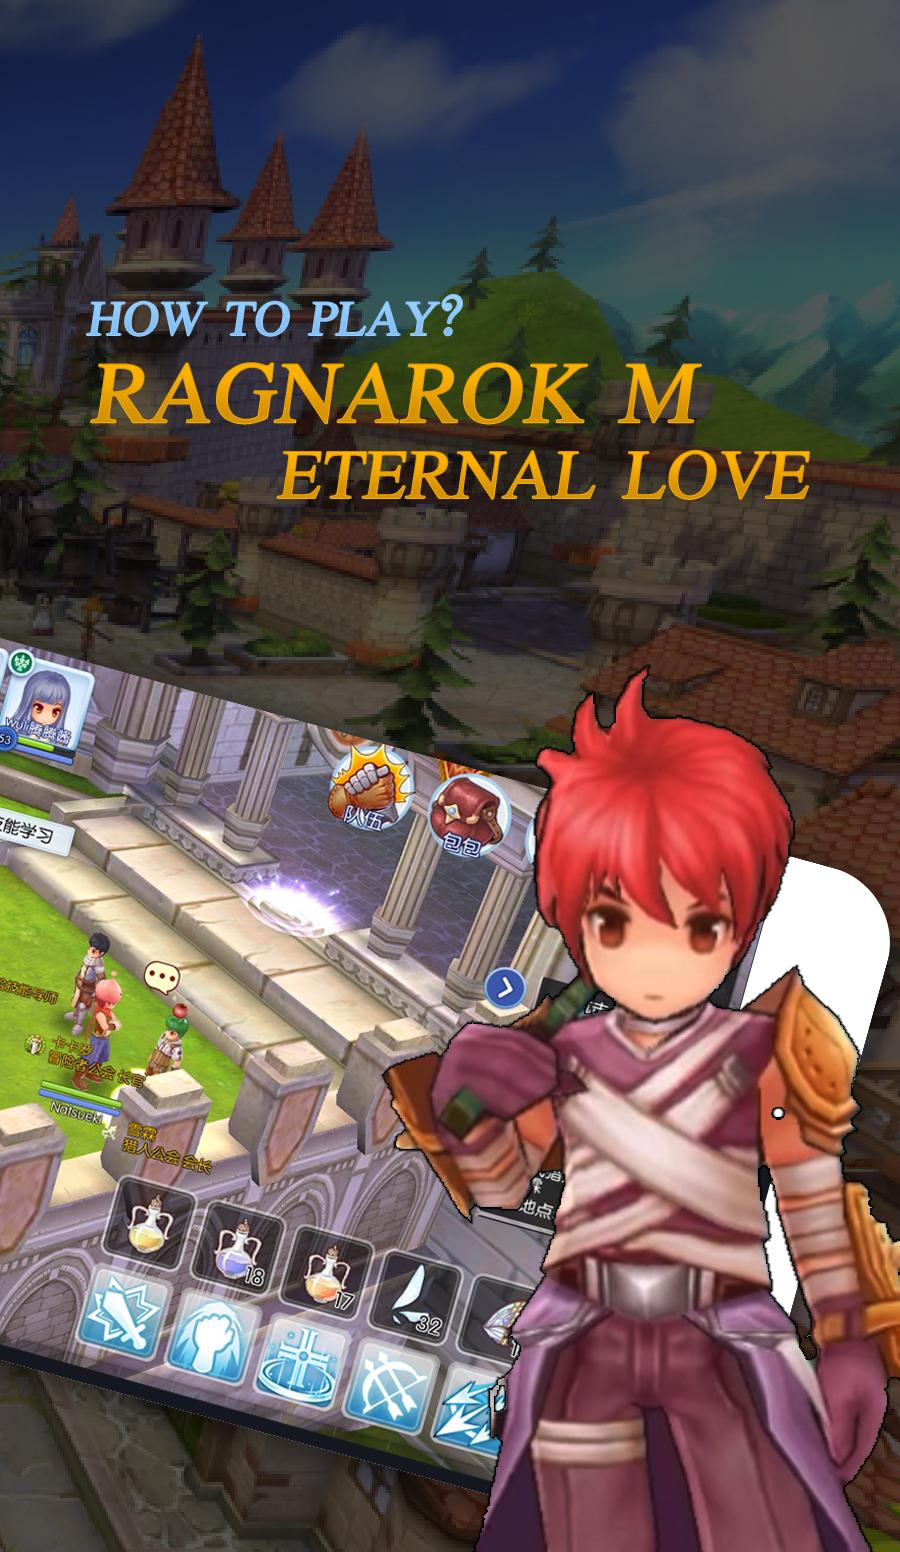 RPG Guide For Ragnarok M Eternal Love for Android - APK Download